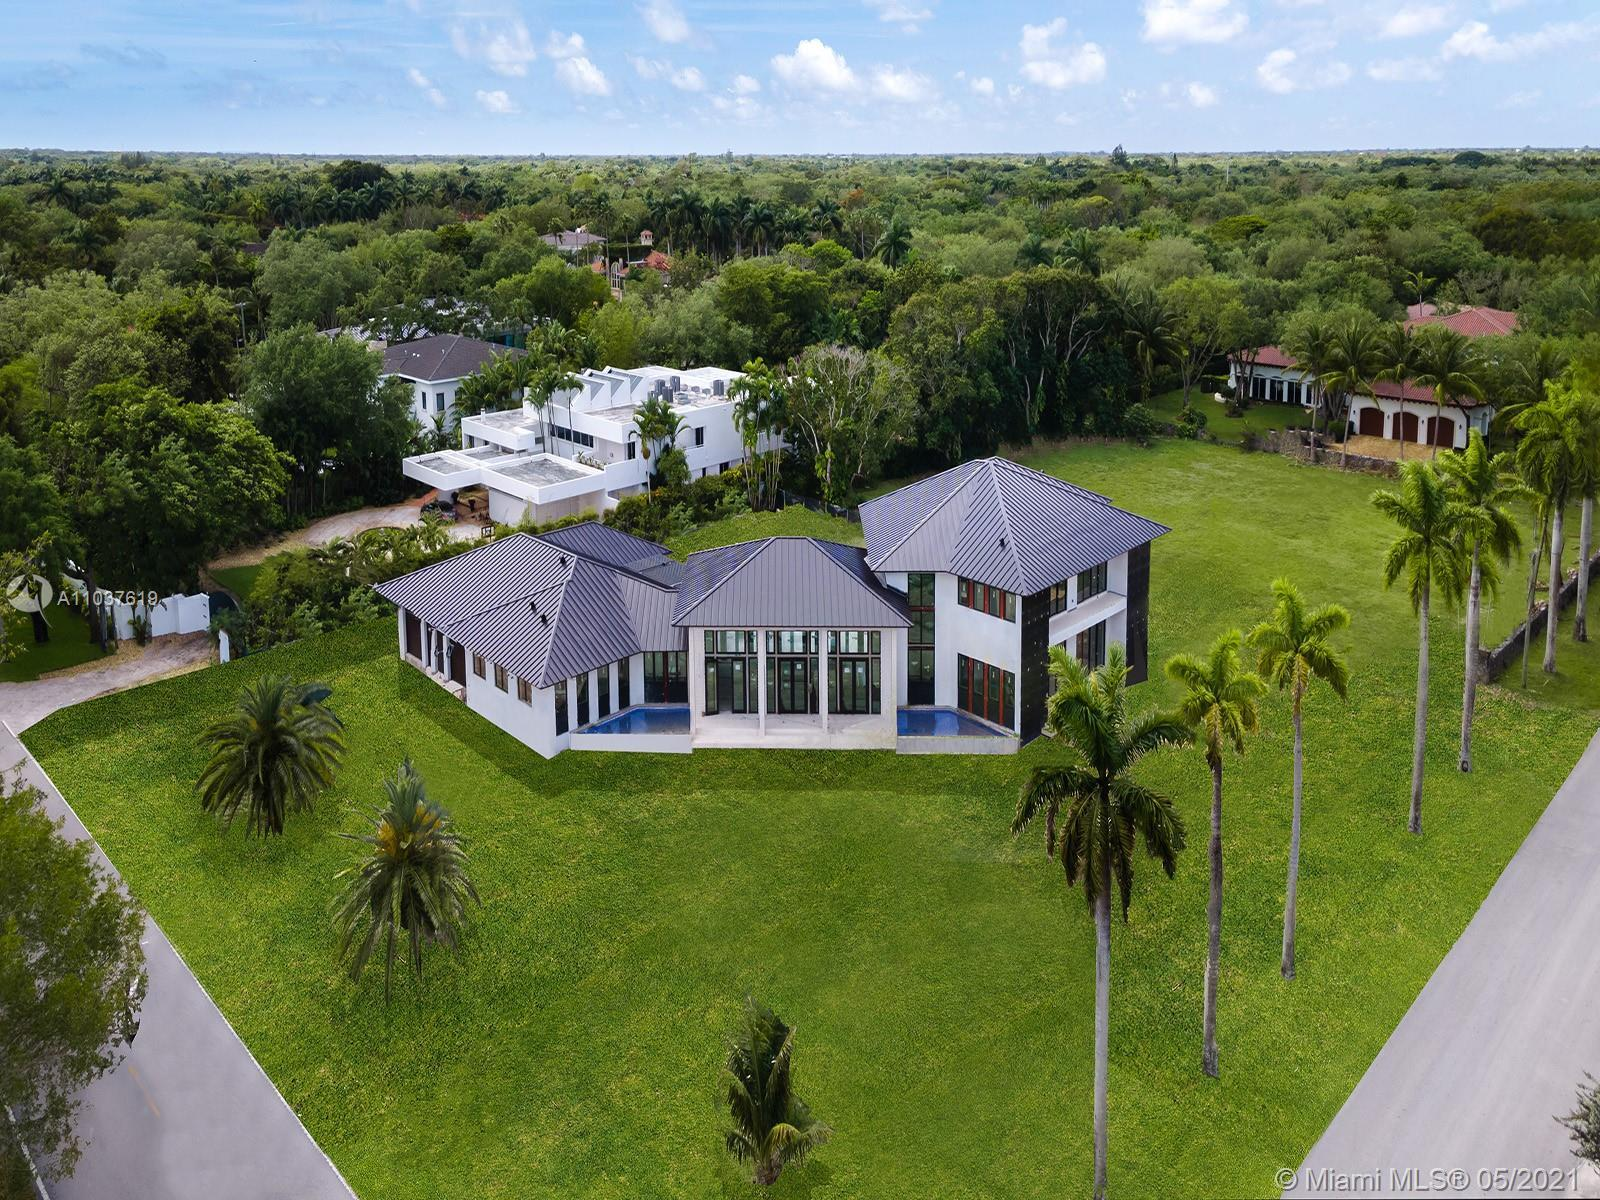 This gracious new-built residence, sprawling across a generous property in the heart of Miami's pres